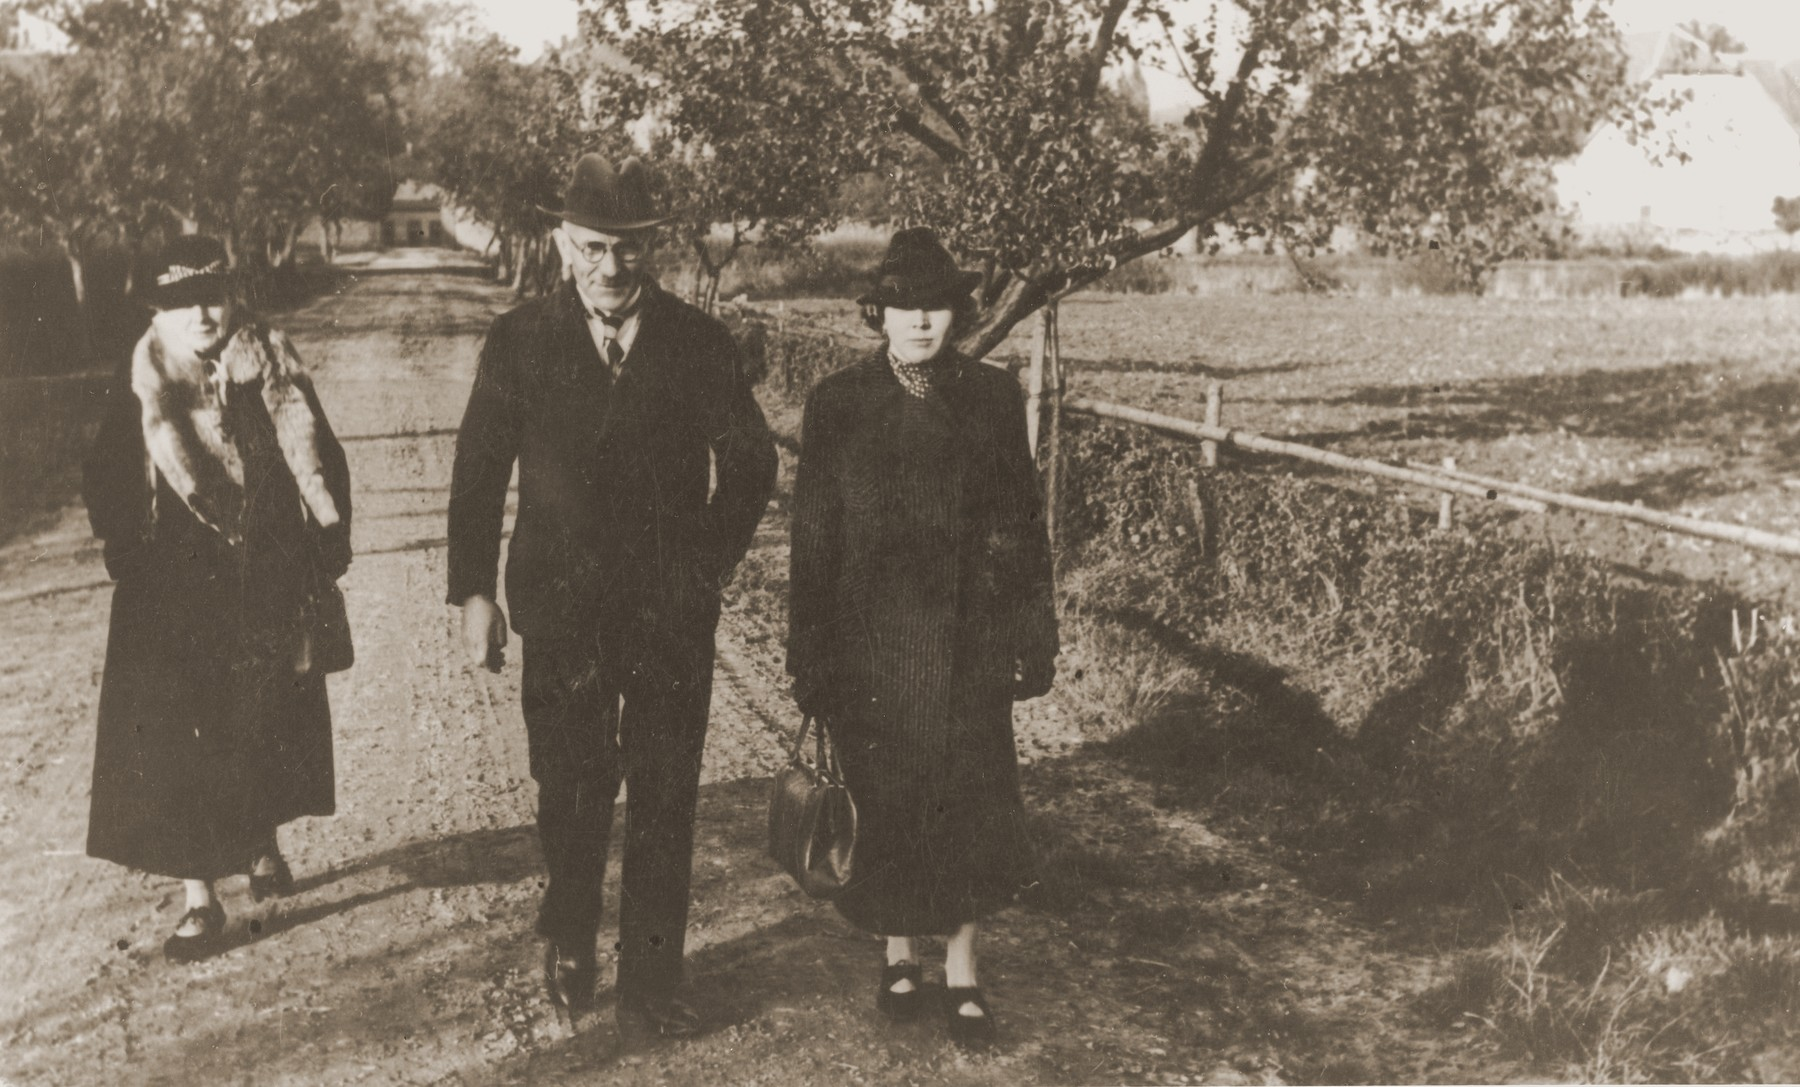 Julius and Mathilde Stern walk along a country lane with their daughter-in-law, Resi Markhoff Stern.